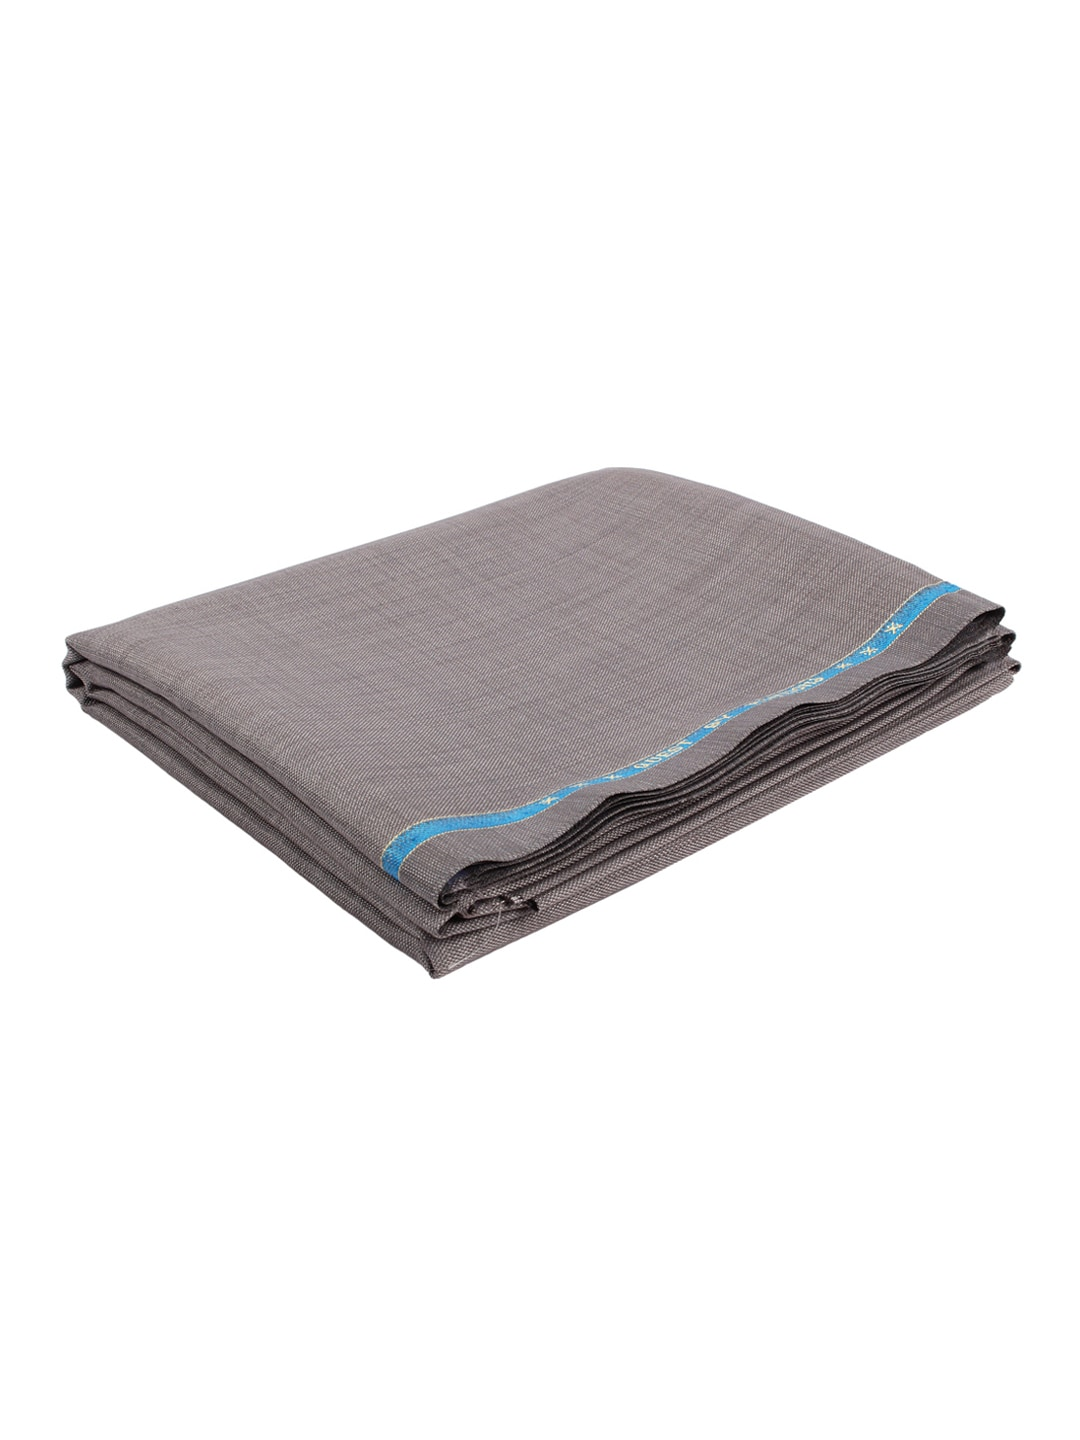 017812418a1 Clothing Fabric - Buy Clothing Fabric online in India